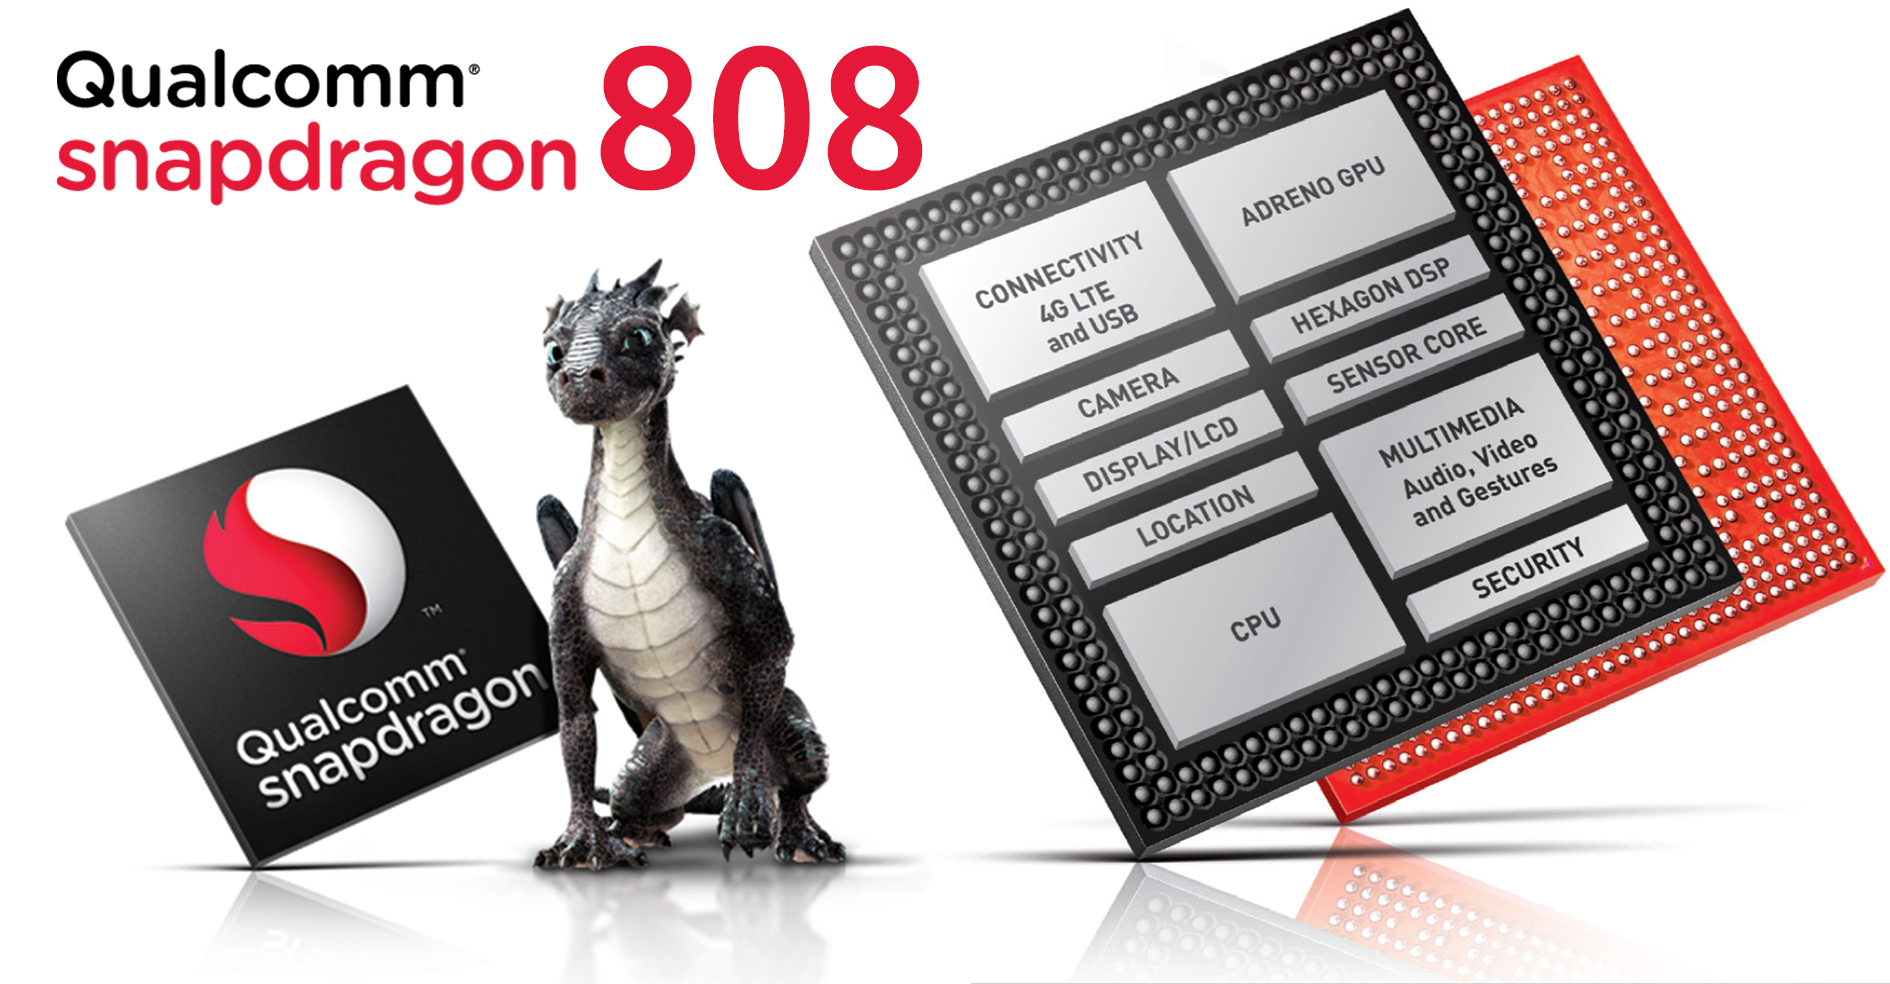 Qualcomm Snapdragon 808